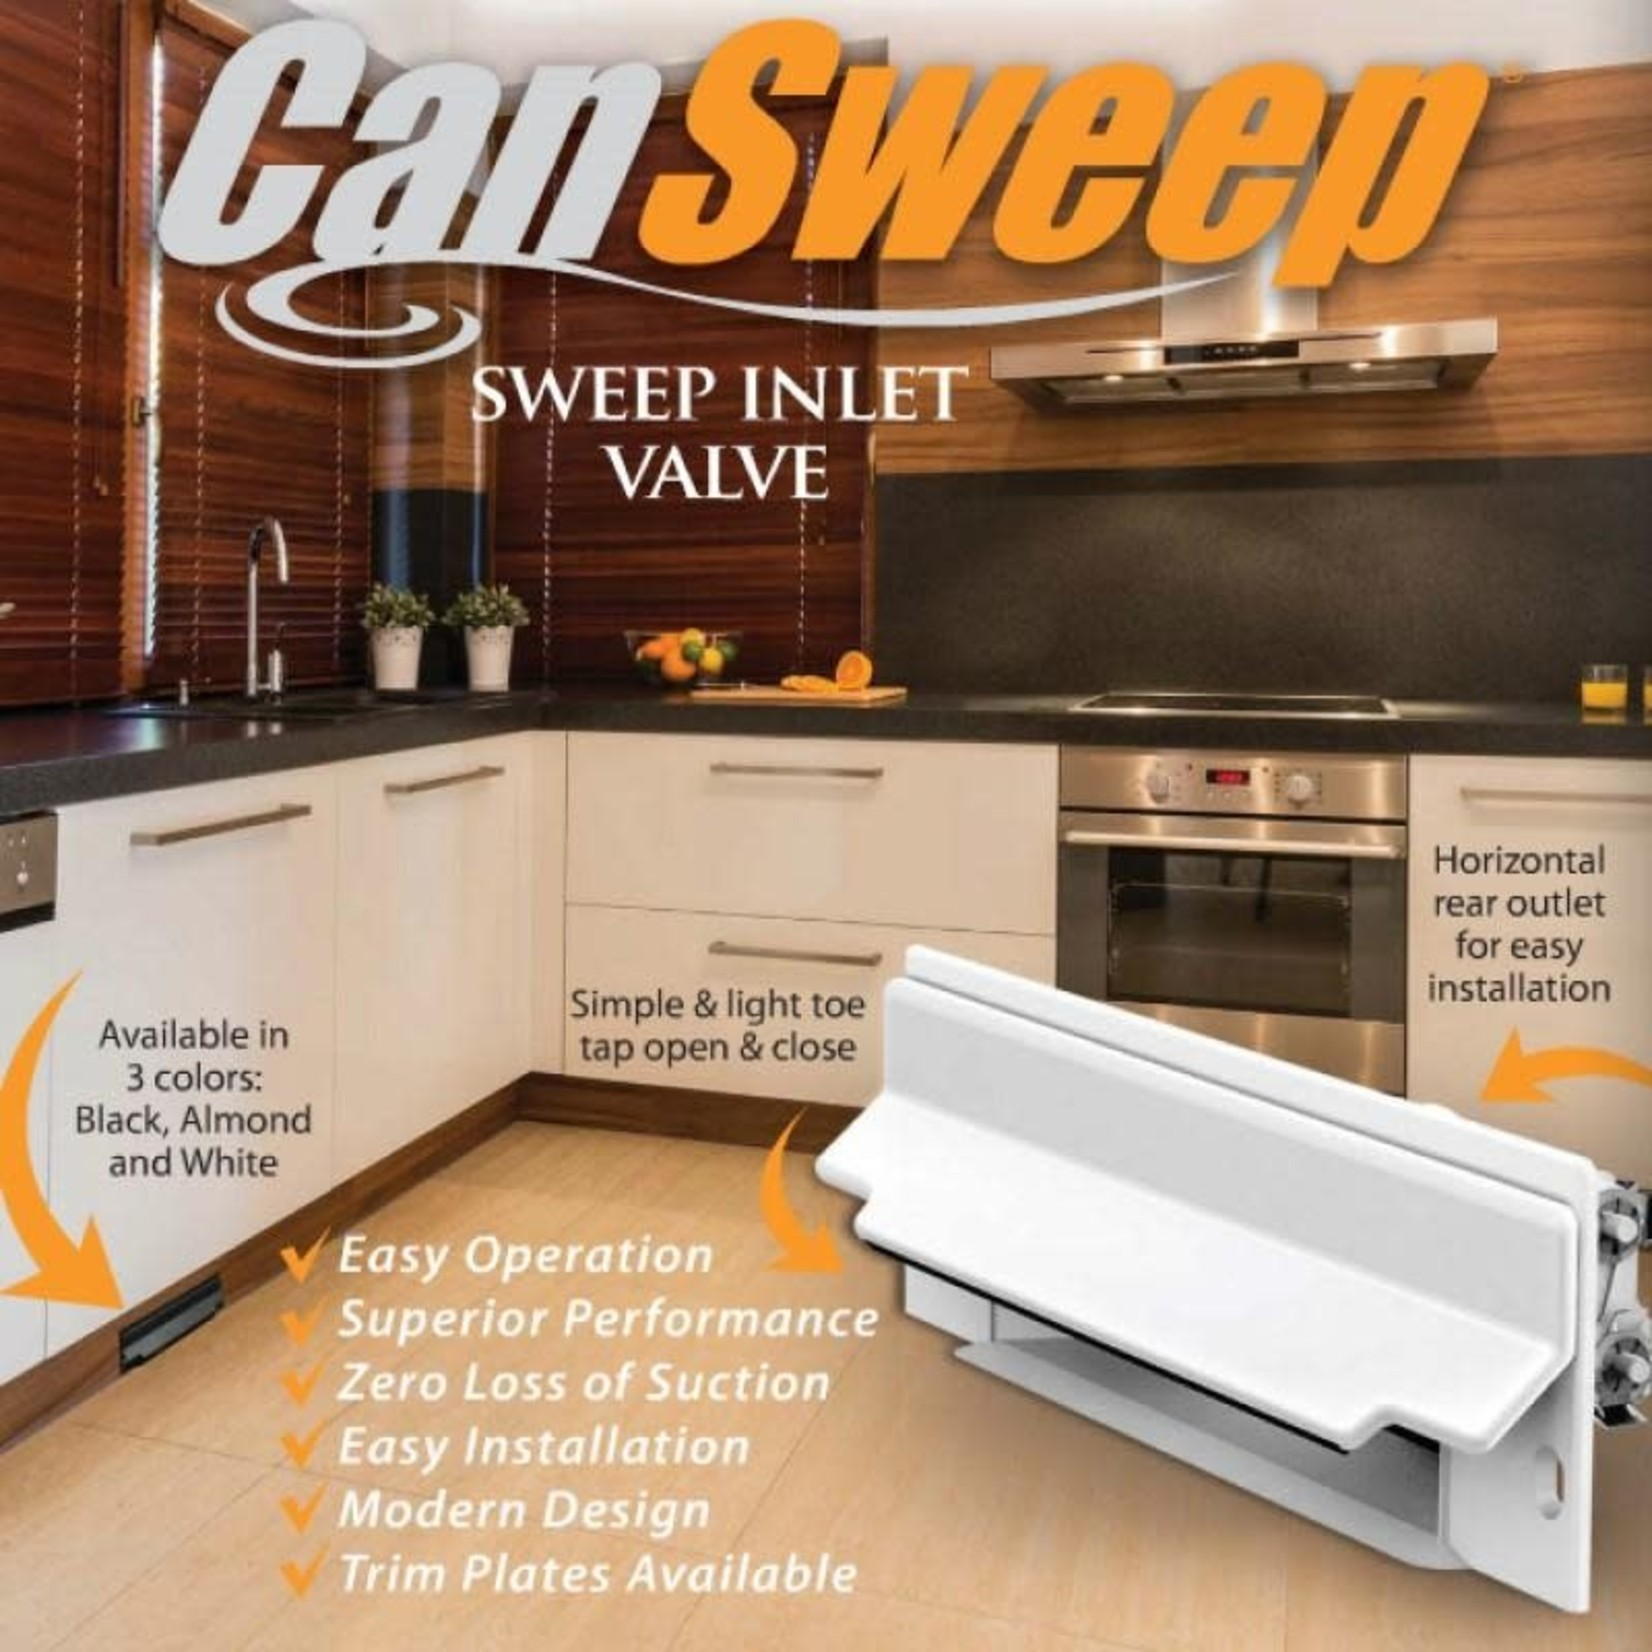 Canplas Cansweep Automatic Dustpan - Almond